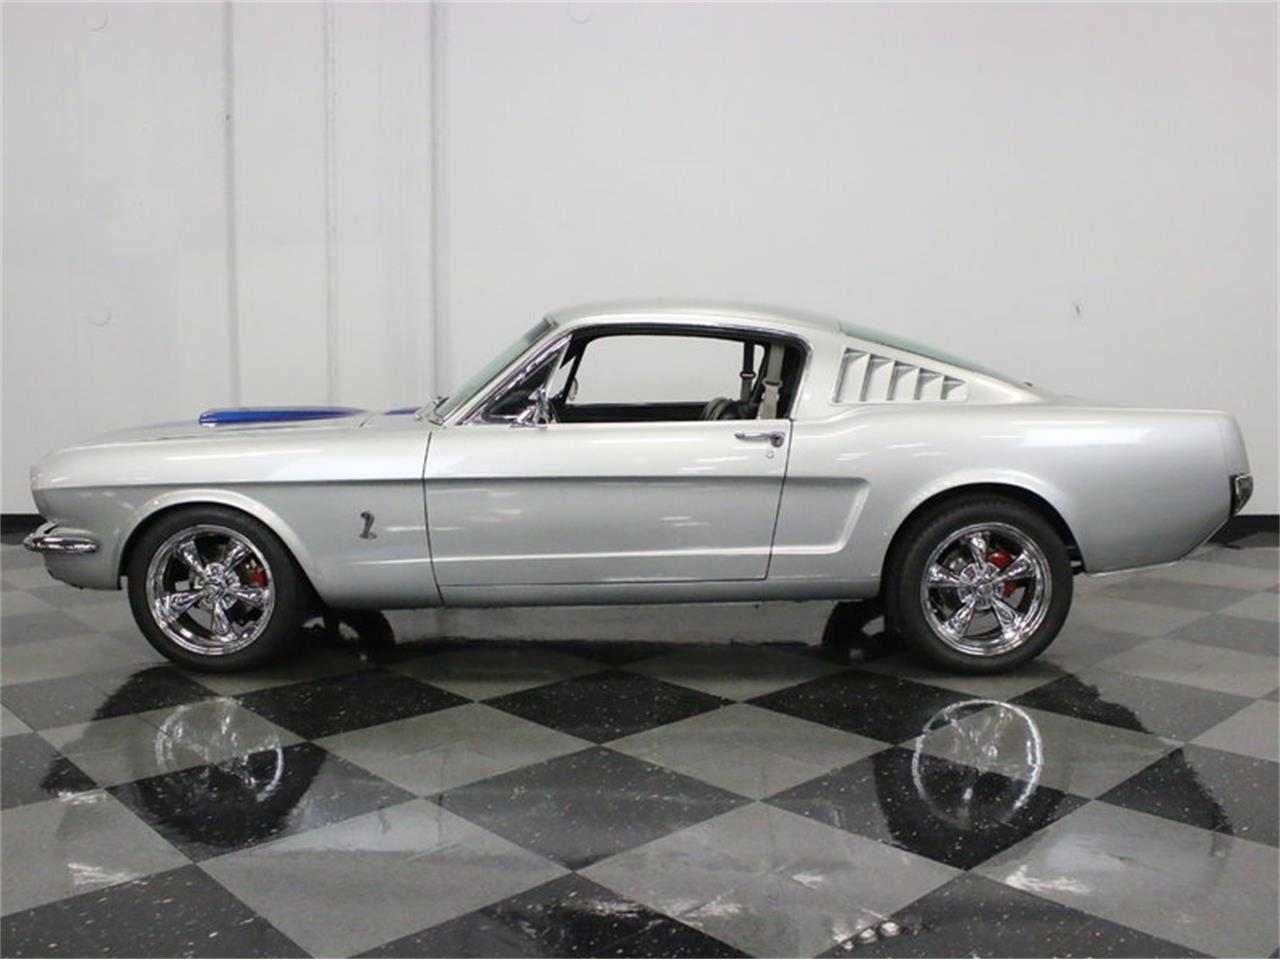 For Sale: 1965 Ford Mustang Fastback Restomod in Ft Worth, Texas